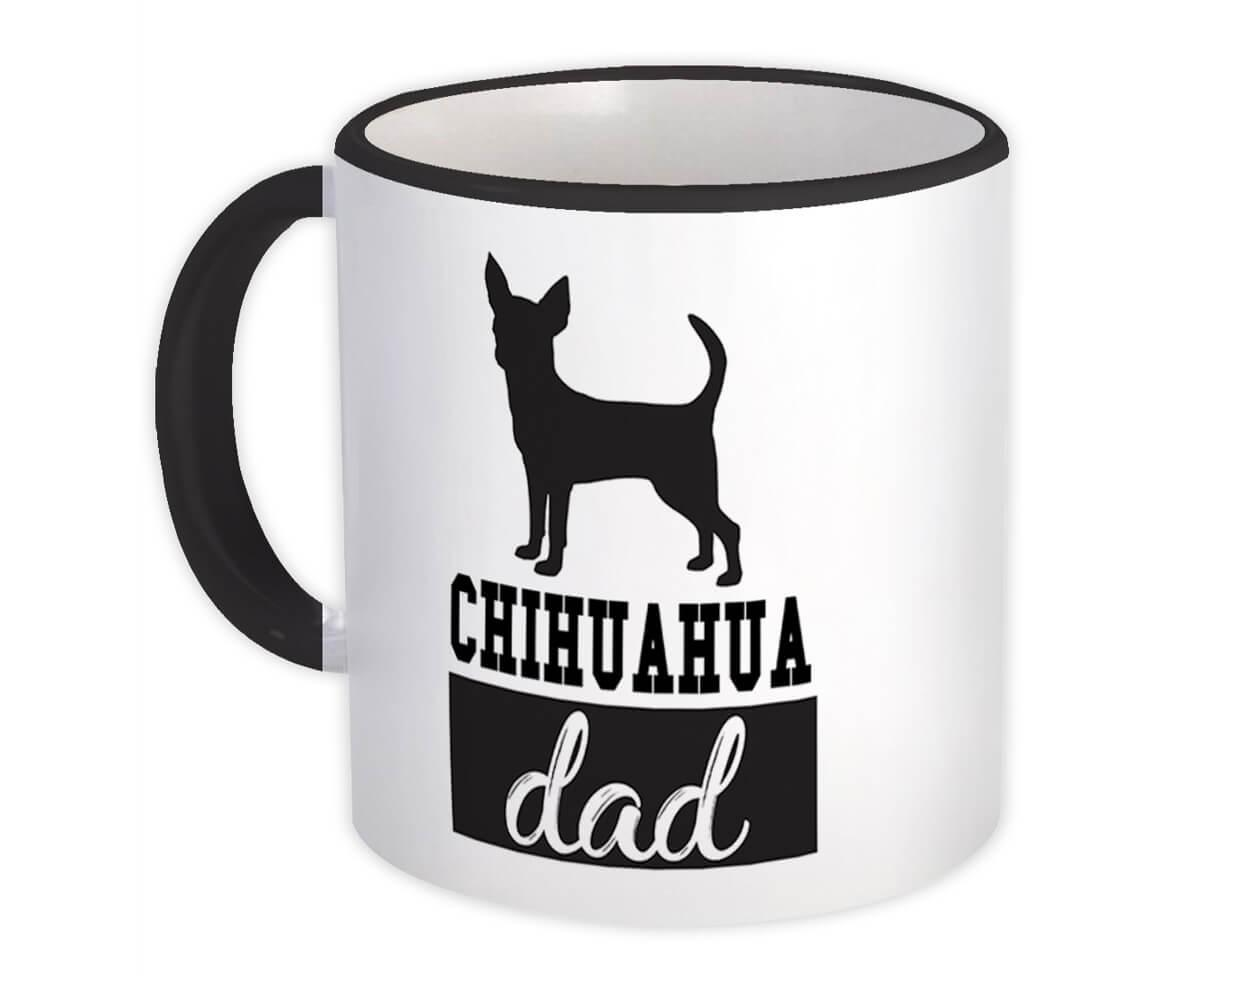 Chihuahua DAD : Gift Mug Dog Silhouette Cup Funny Pet Animal Father